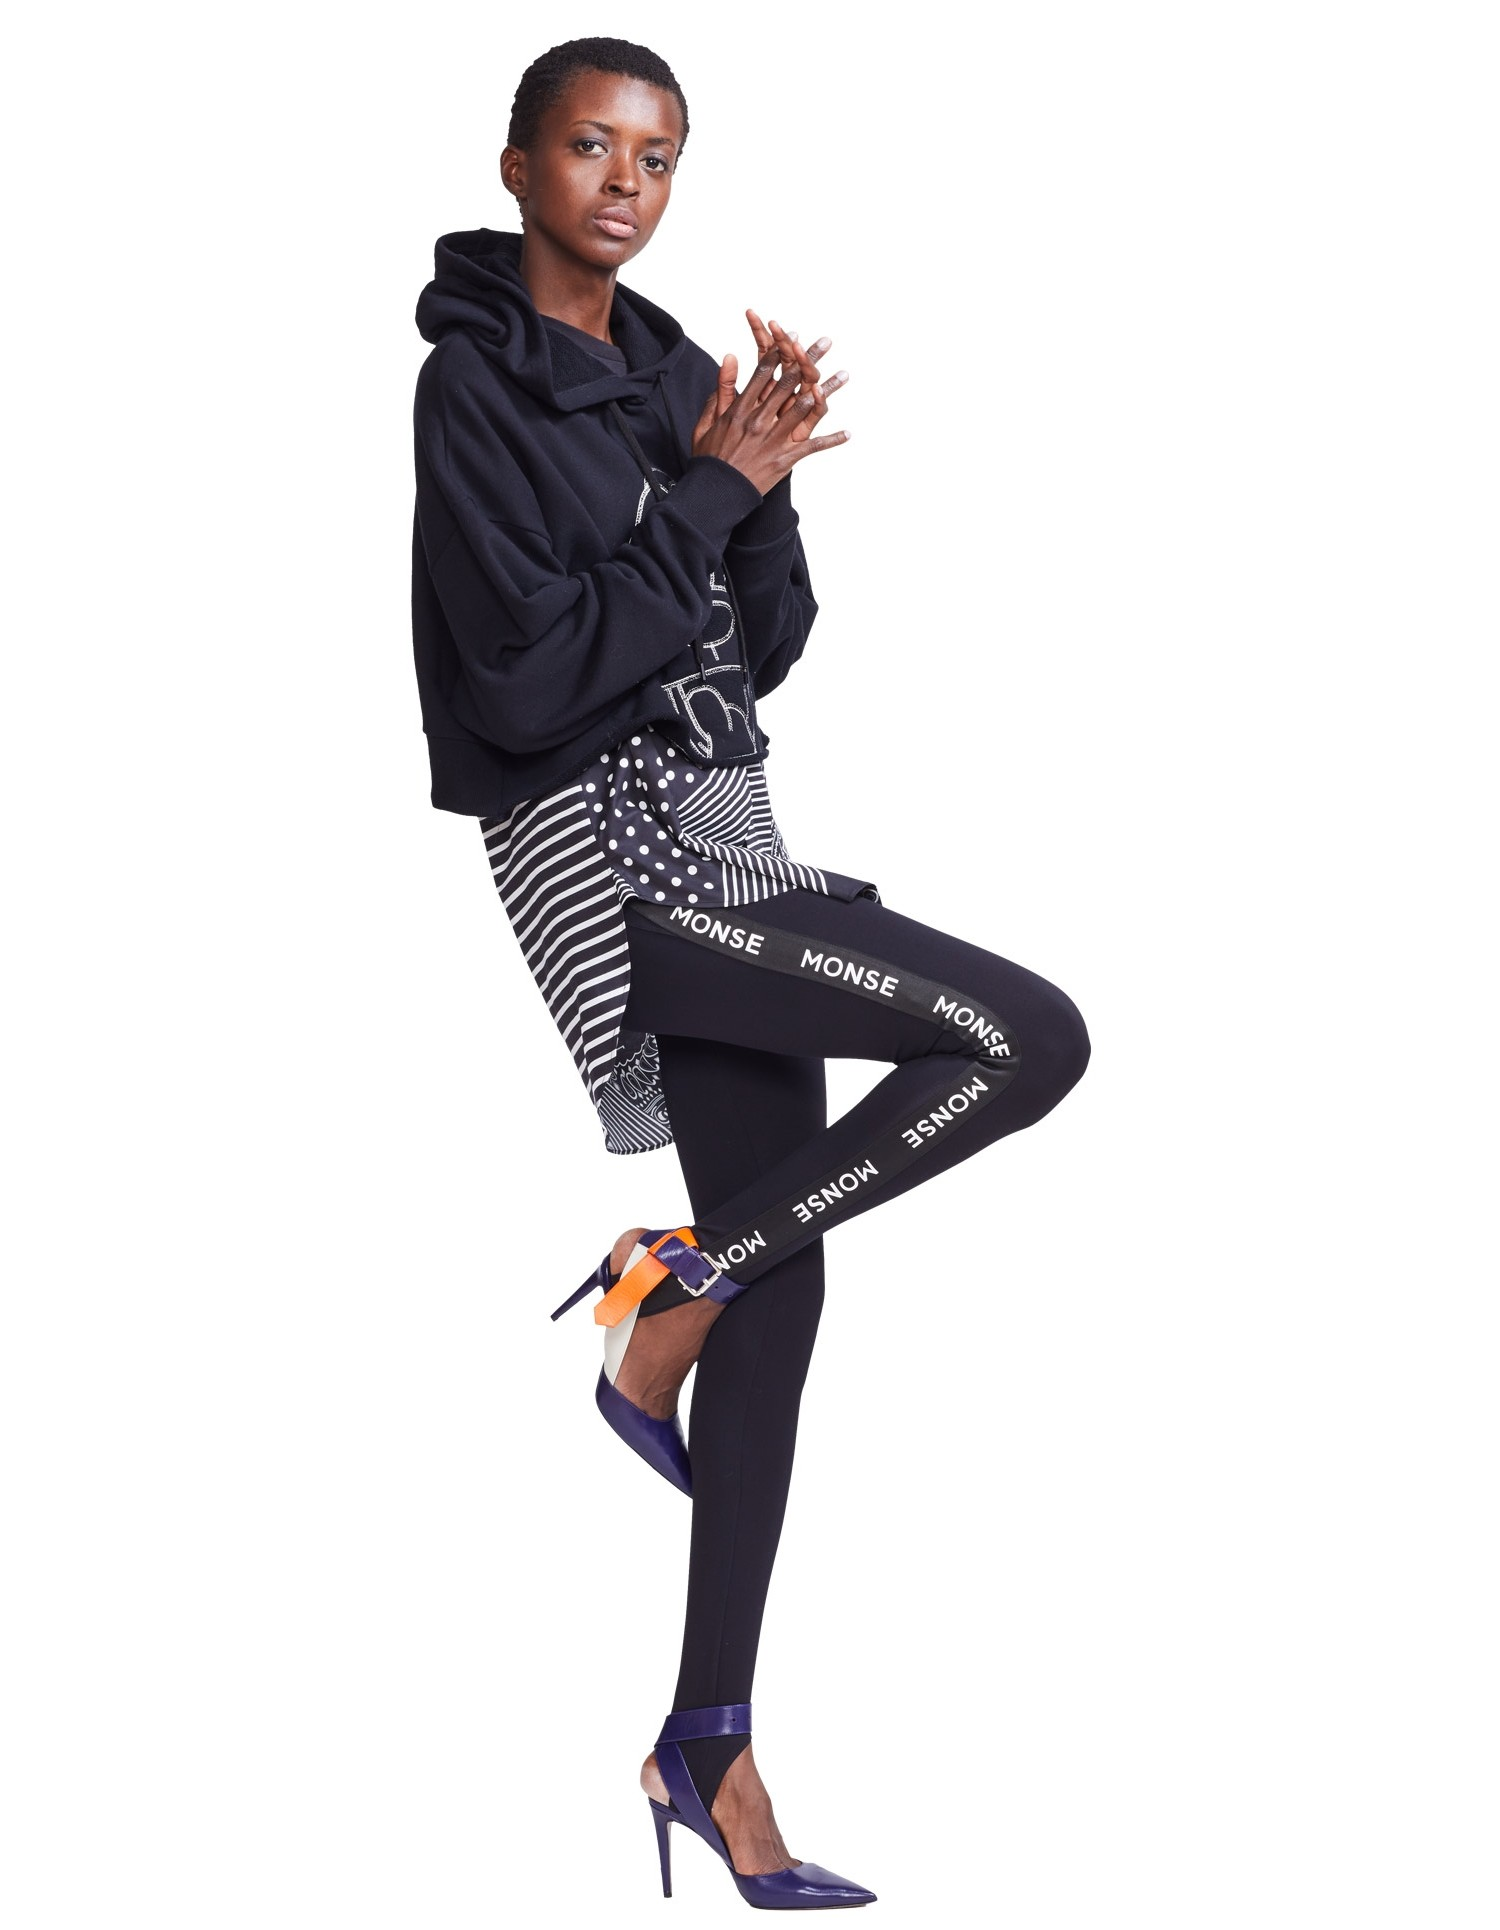 Monse Unisex Logo Leggings on Model Side View